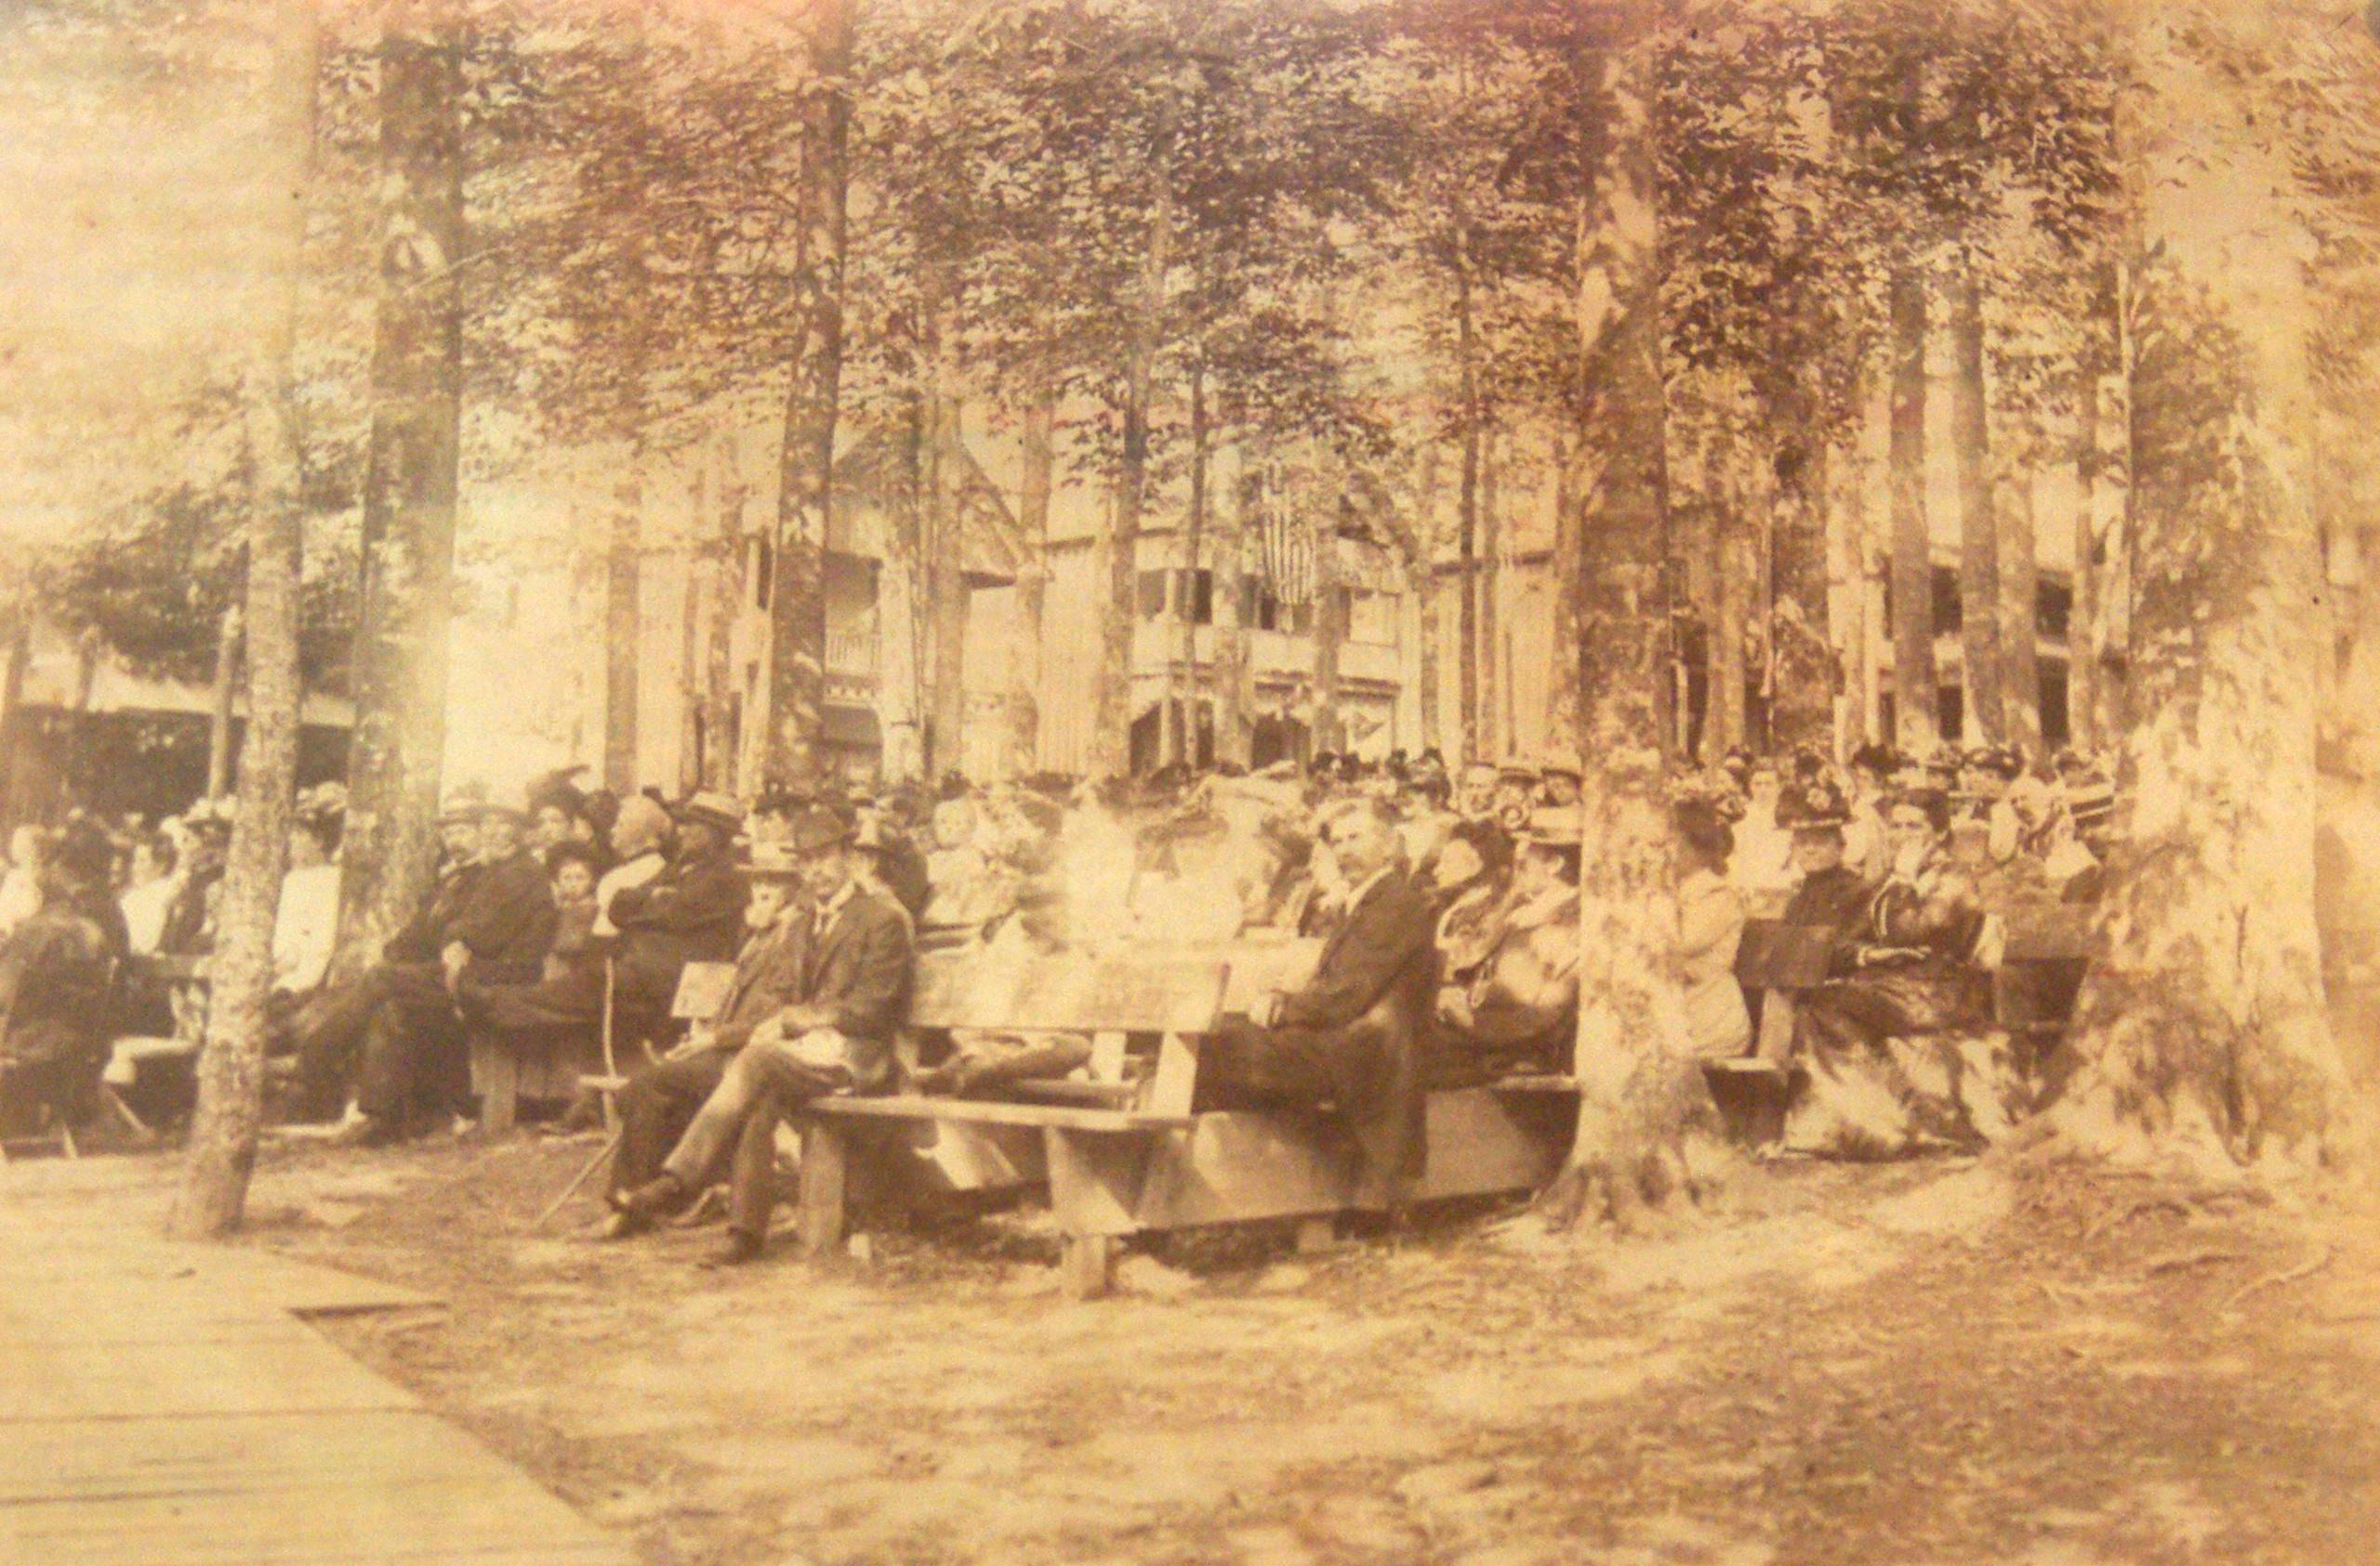 methodist camp meetings See more of marietta campmeeting on facebook log in or  a ds in the methodist church baptized me under the arbor  marietta camp meeting.